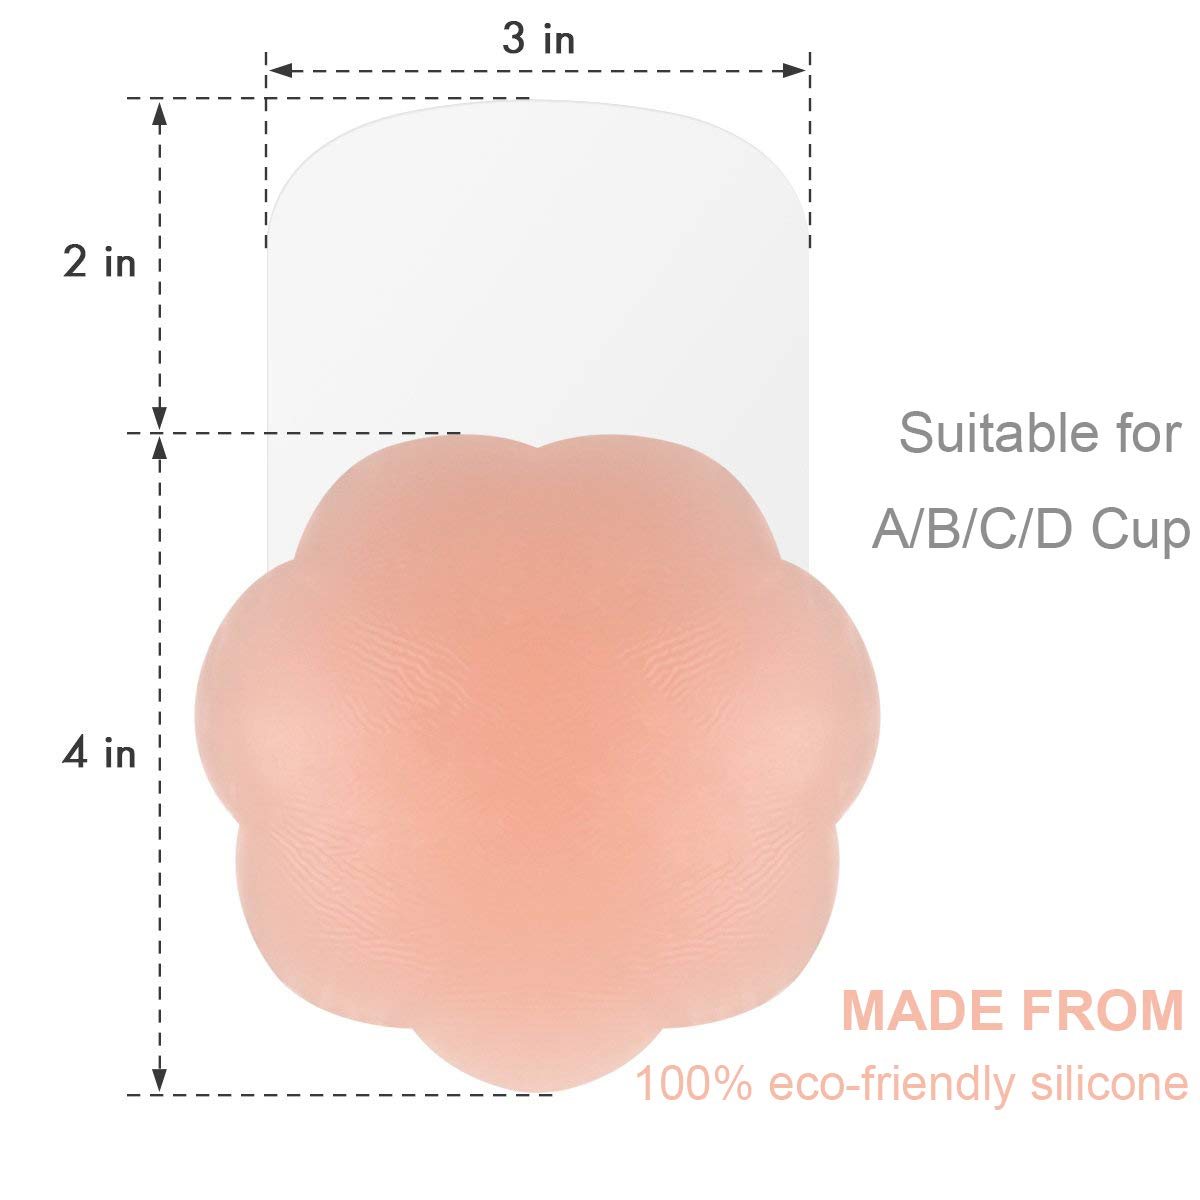 Adhesive Bra Backless /& Strapless Breast Lift For Women Silicone Pasties Reusable Breast Petals Invisible Nipple Cover